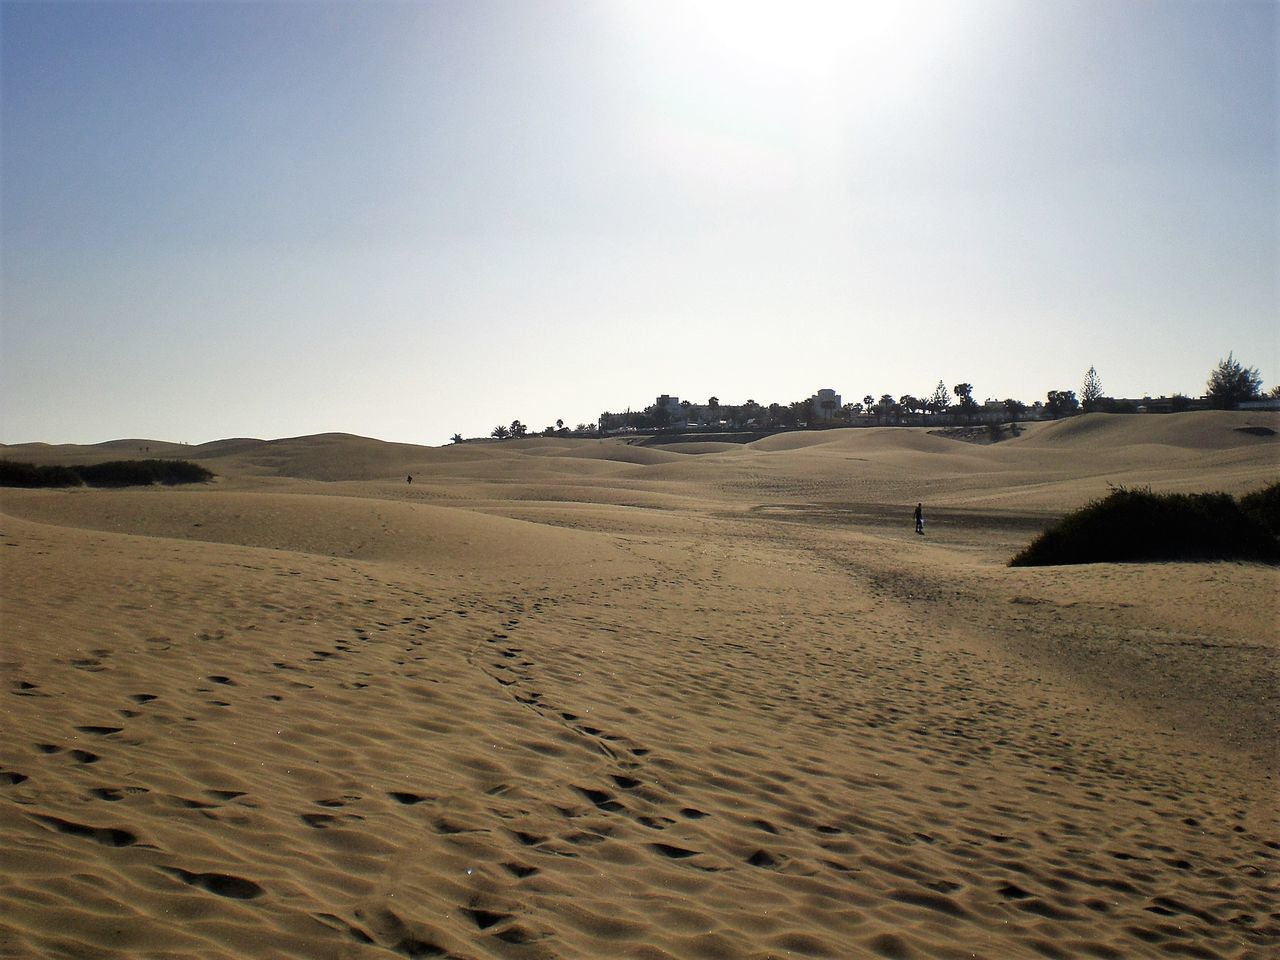 Arid Climate Beach Beauty In Nature Blue Day Desert Horizon Over Land Idyllic Landscape Nature Non-urban Scene Outdoors Remote Sand Scenics Shore Sky Tourism Tranquil Scene Tranquility Travel Destinations Gran Canaria Dunes Dunes De Maspalomas